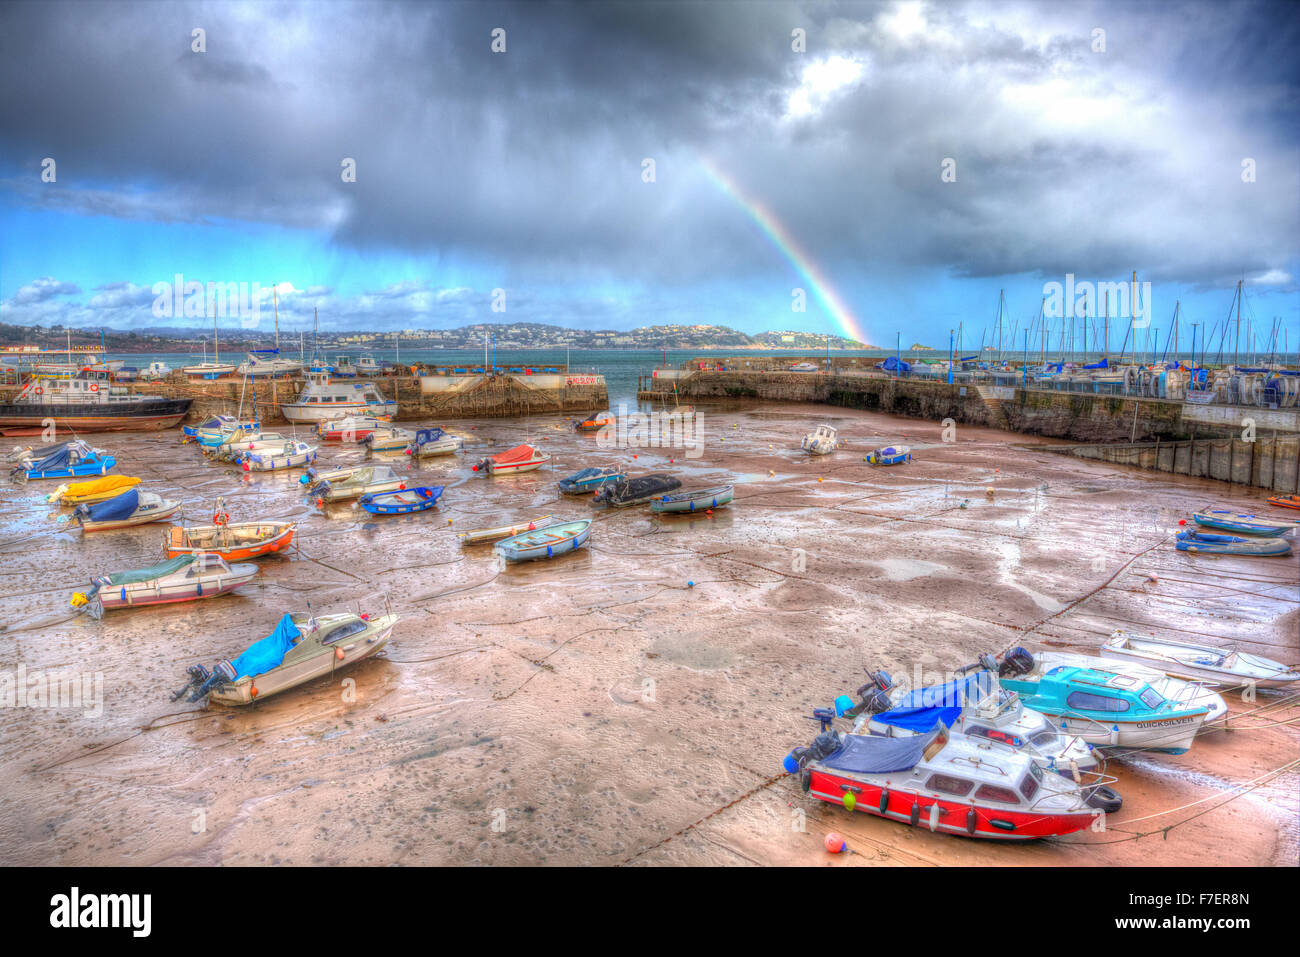 Rainbow English harbour paignton Devon England uk in colourful HDR with boats at low tide and view to Torquay - Stock Image